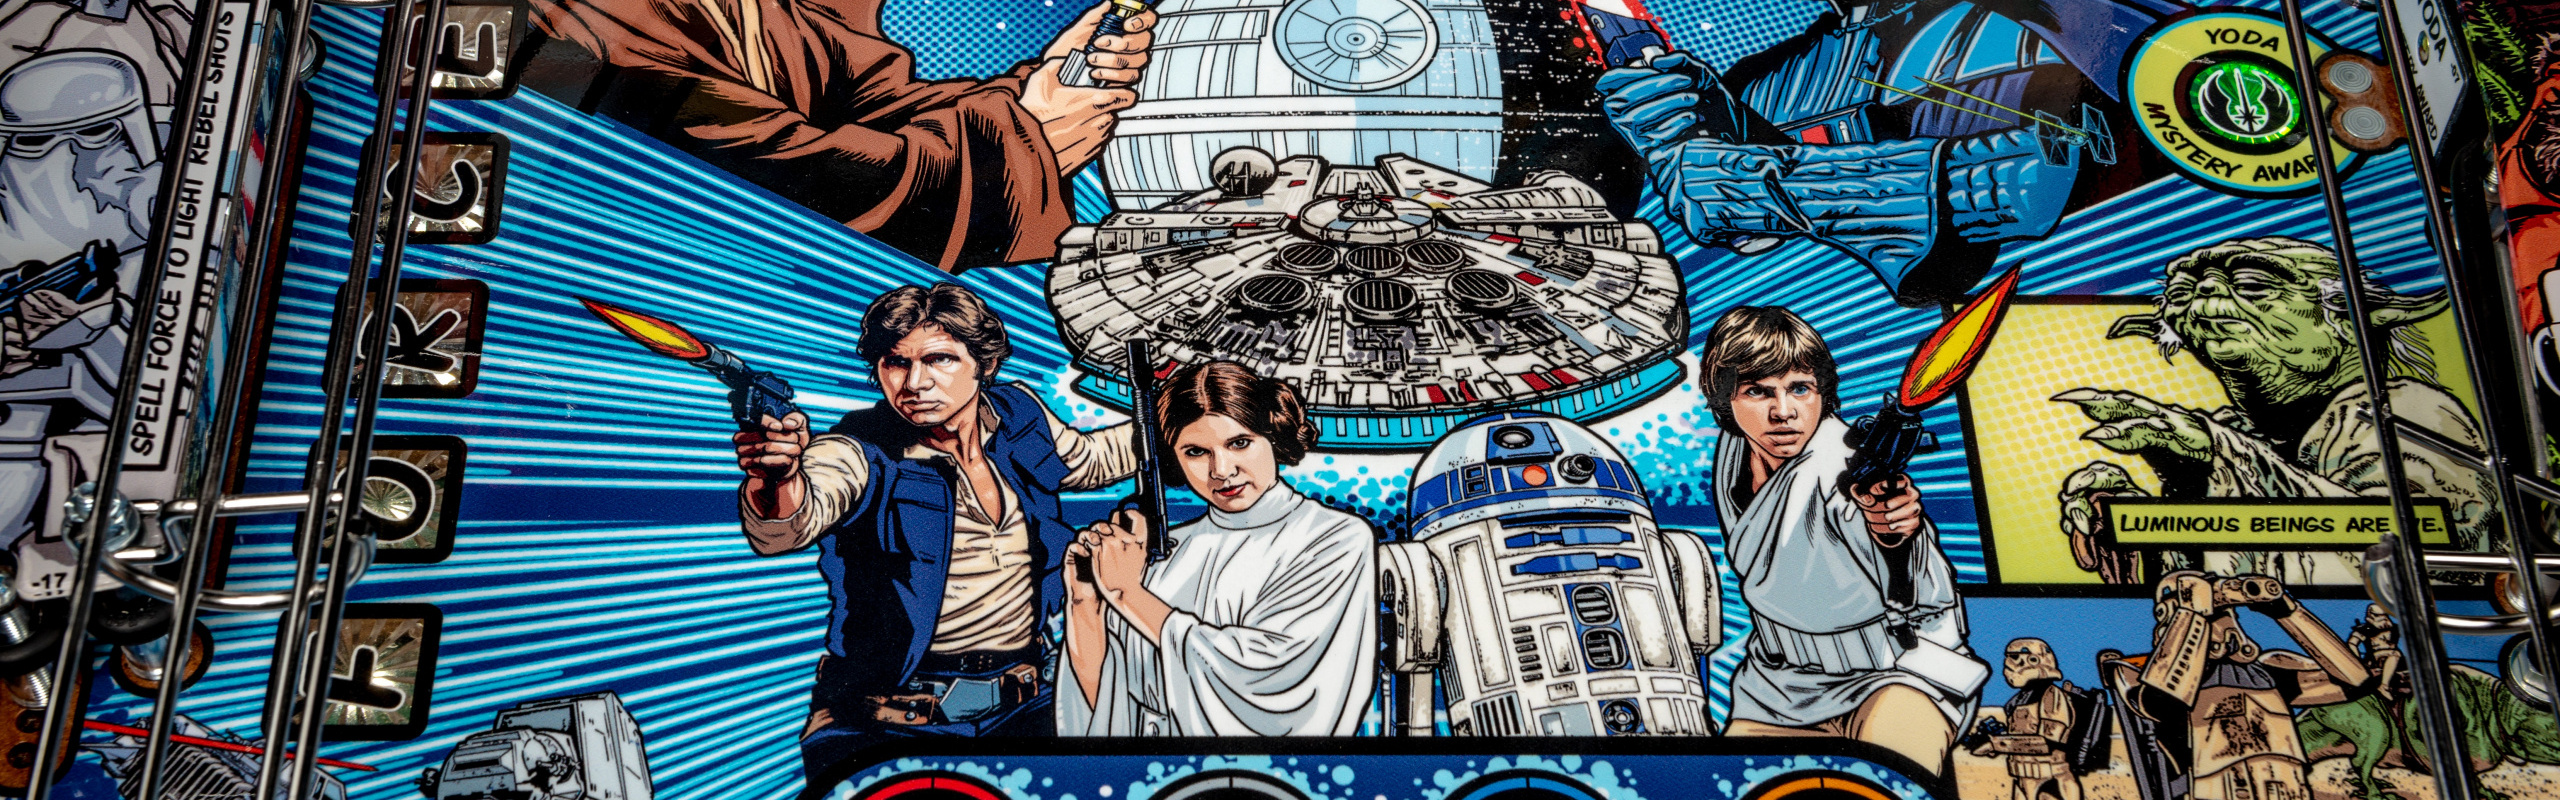 Stern Pinball Announces New Star Wars™ Comic Art Pin™ Affordable Pinball Machine for the Home